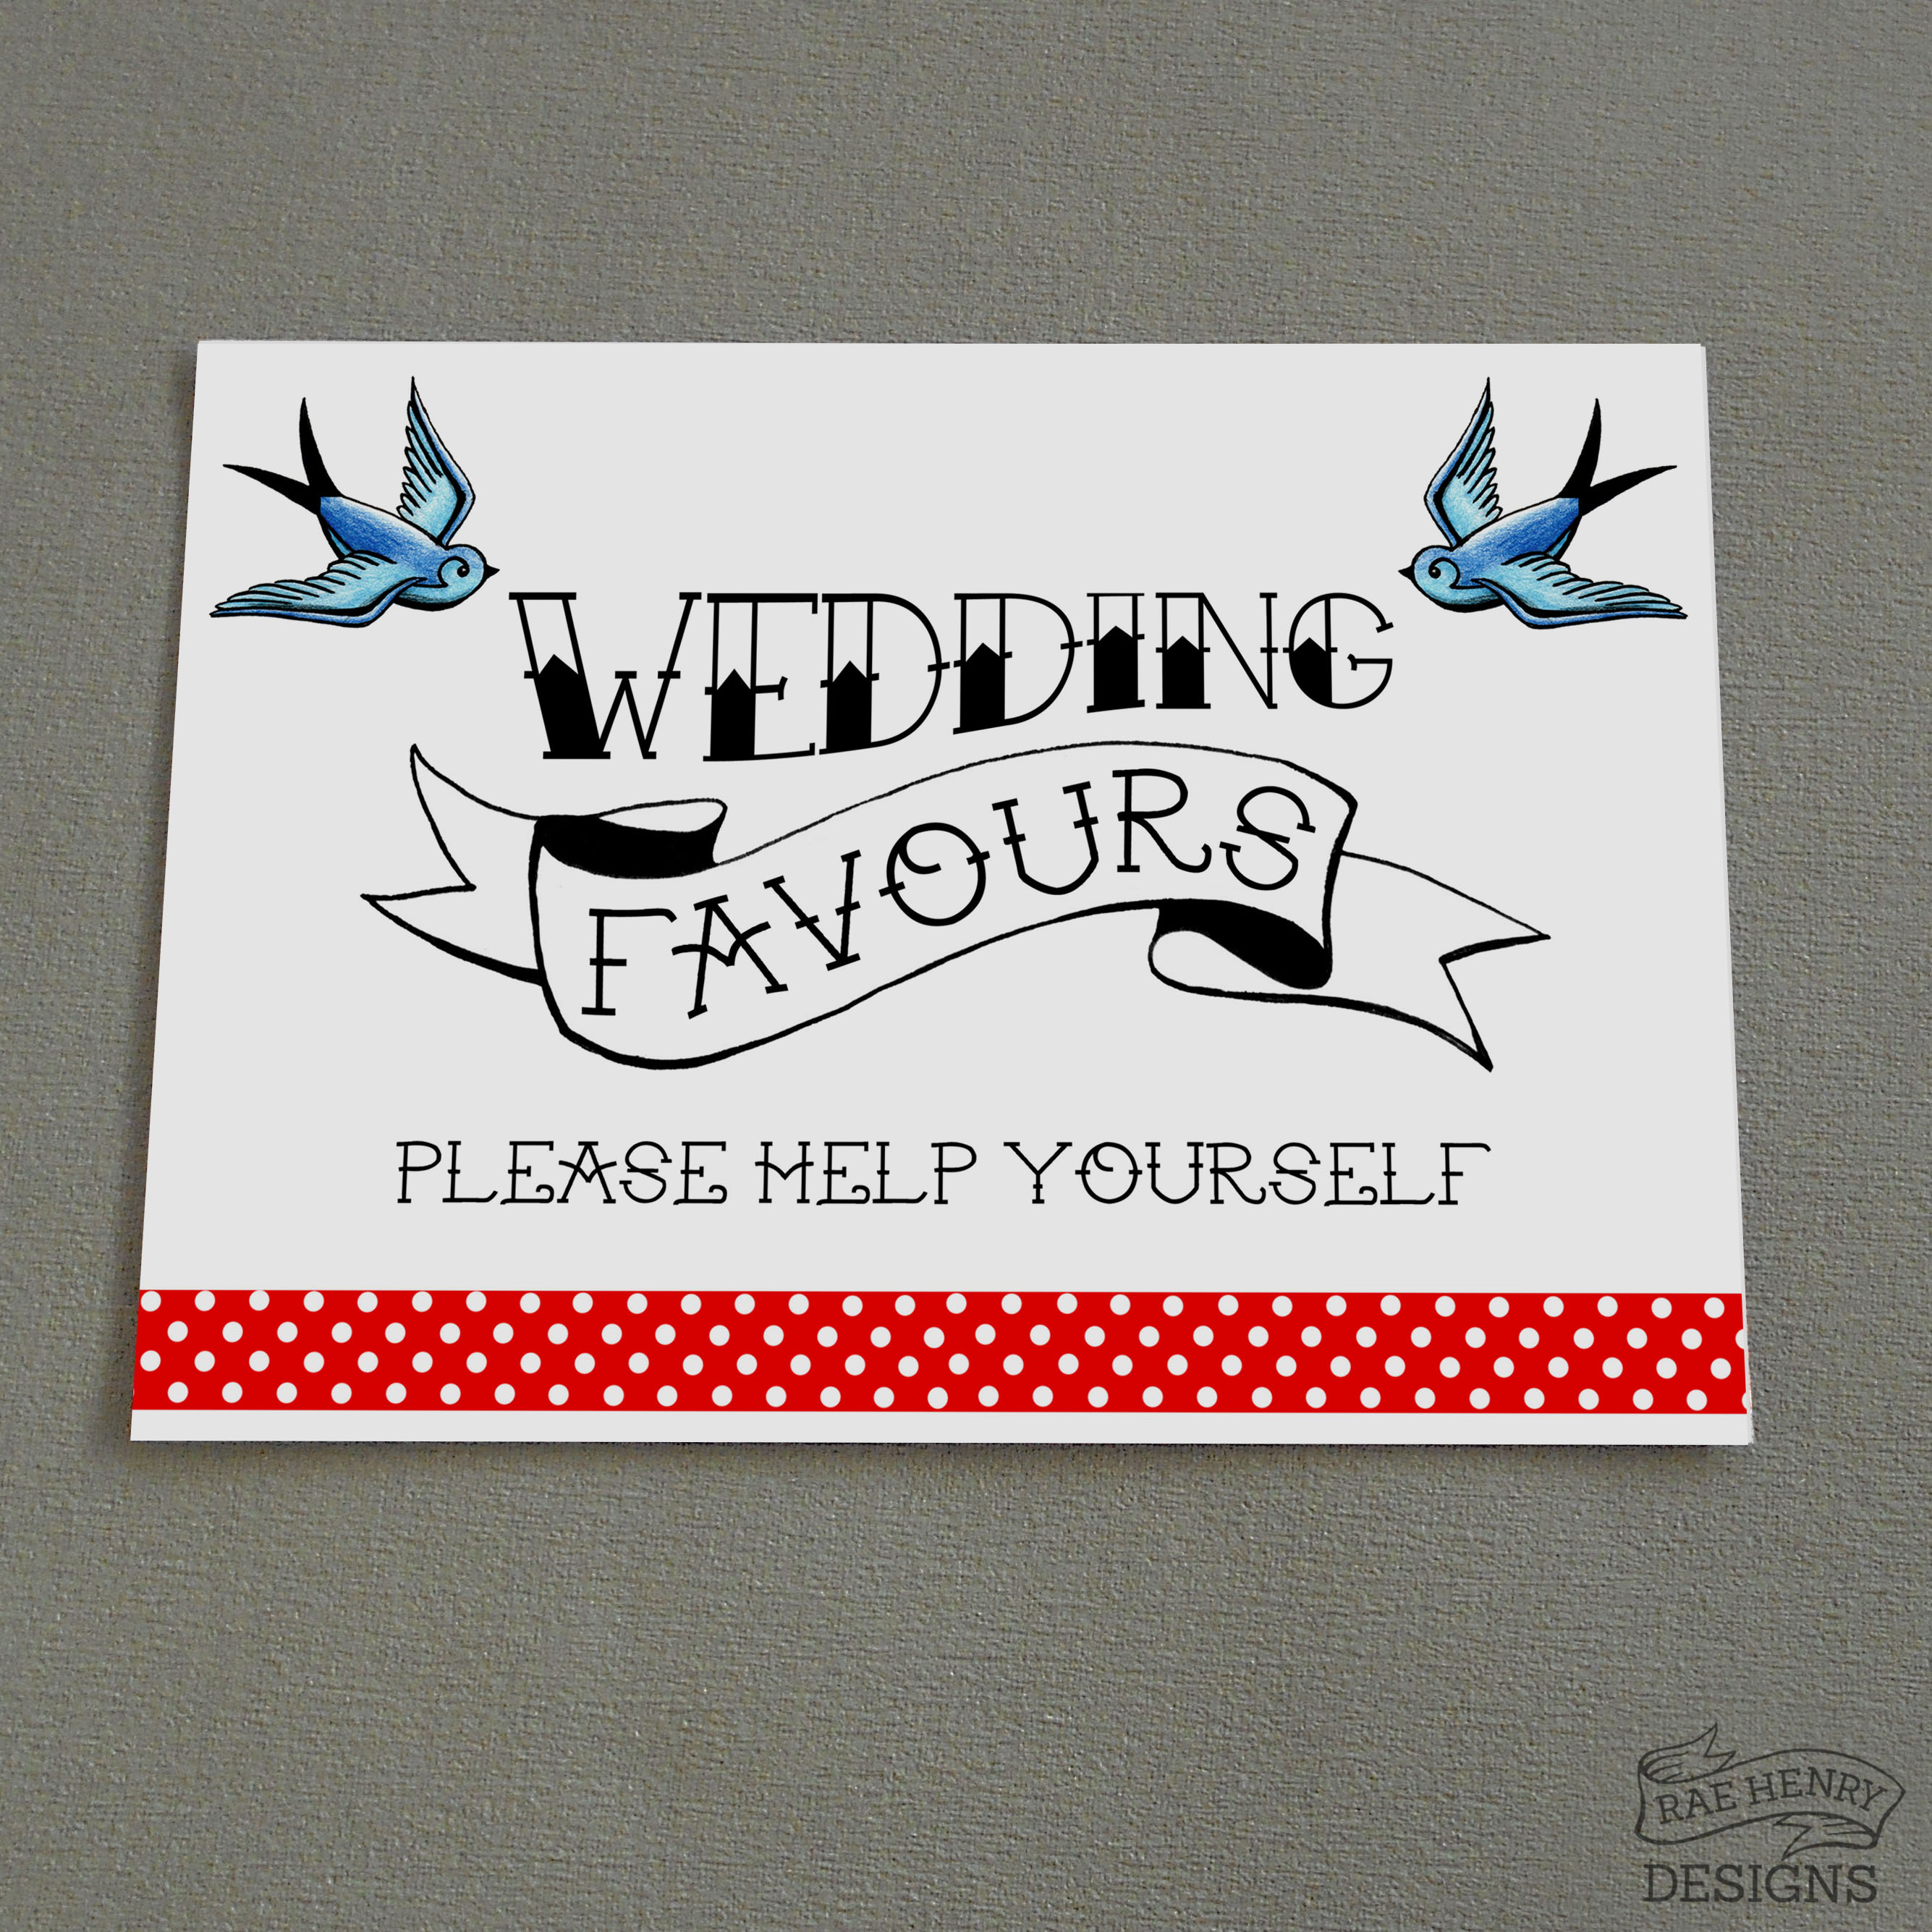 Tattoo Wedding Favours Sign